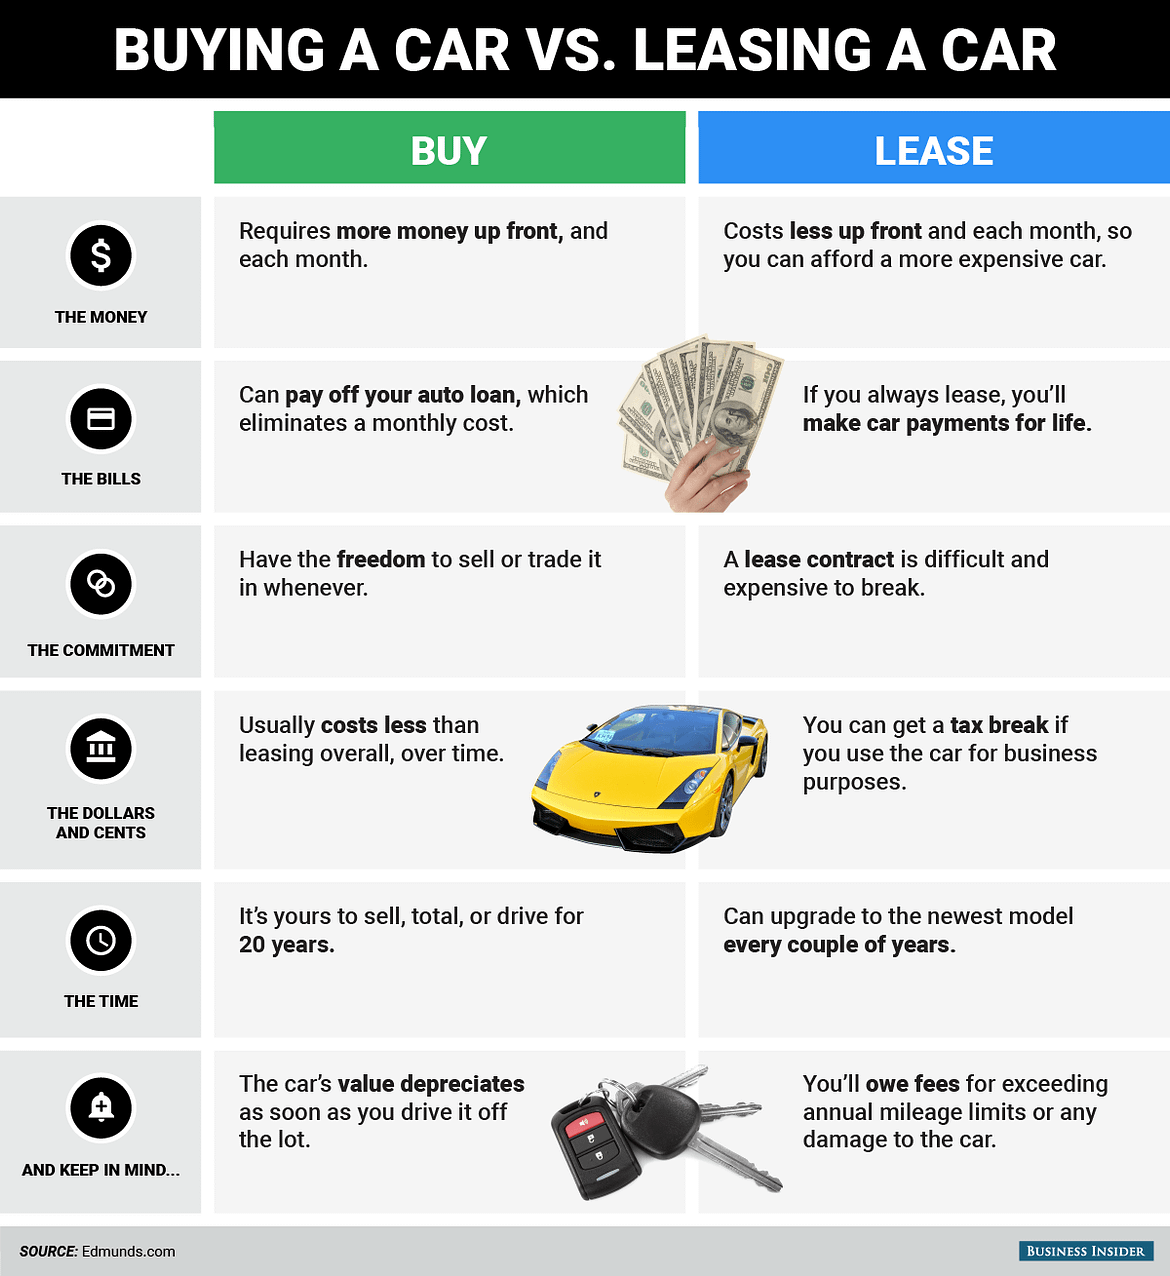 Benefits of Leasing a Car for Business